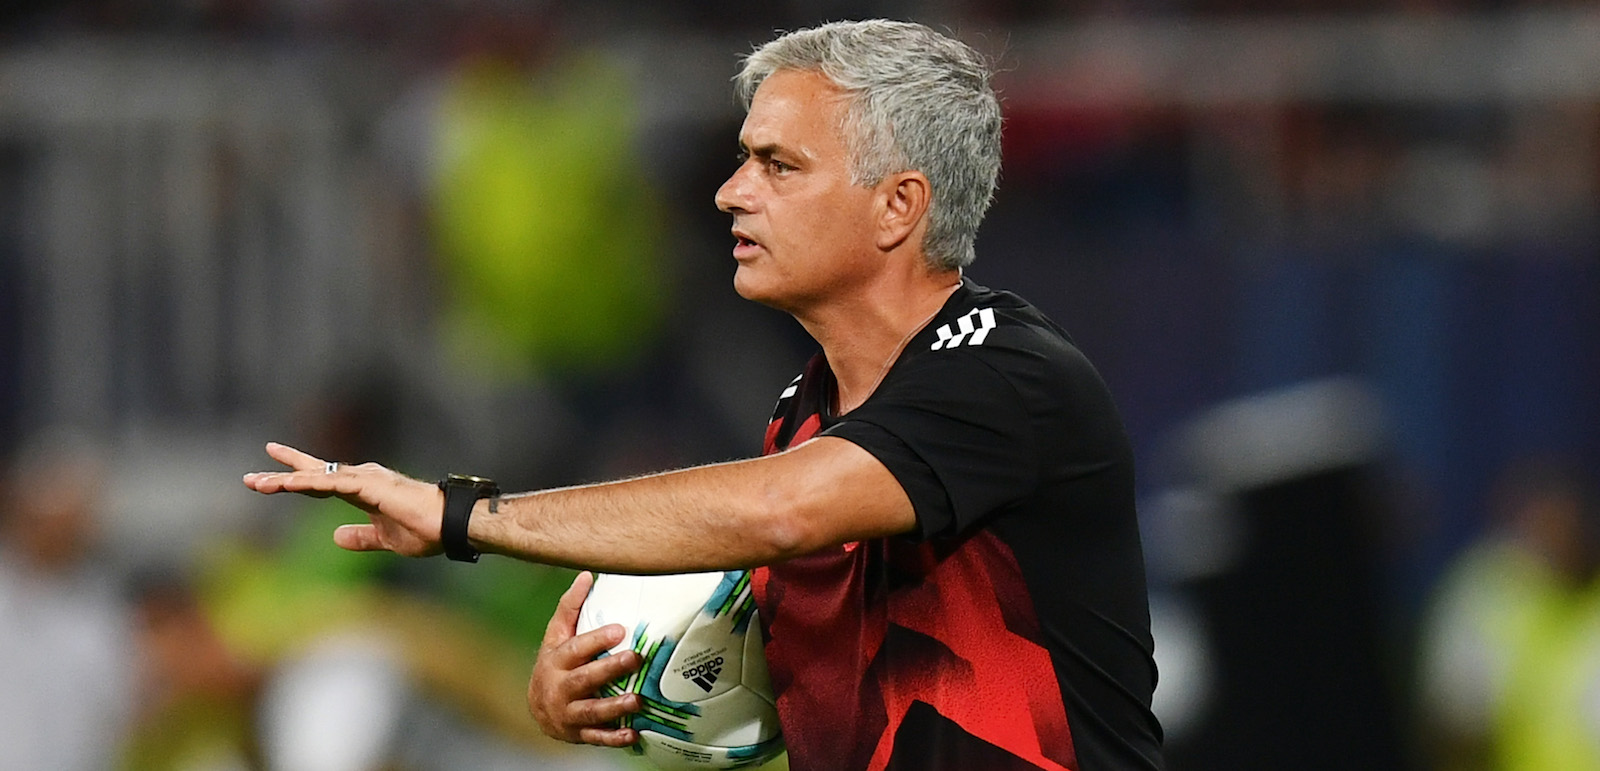 Frank Lampard: Jose Mourinho is Manchester United's biggest asset in the Champions League